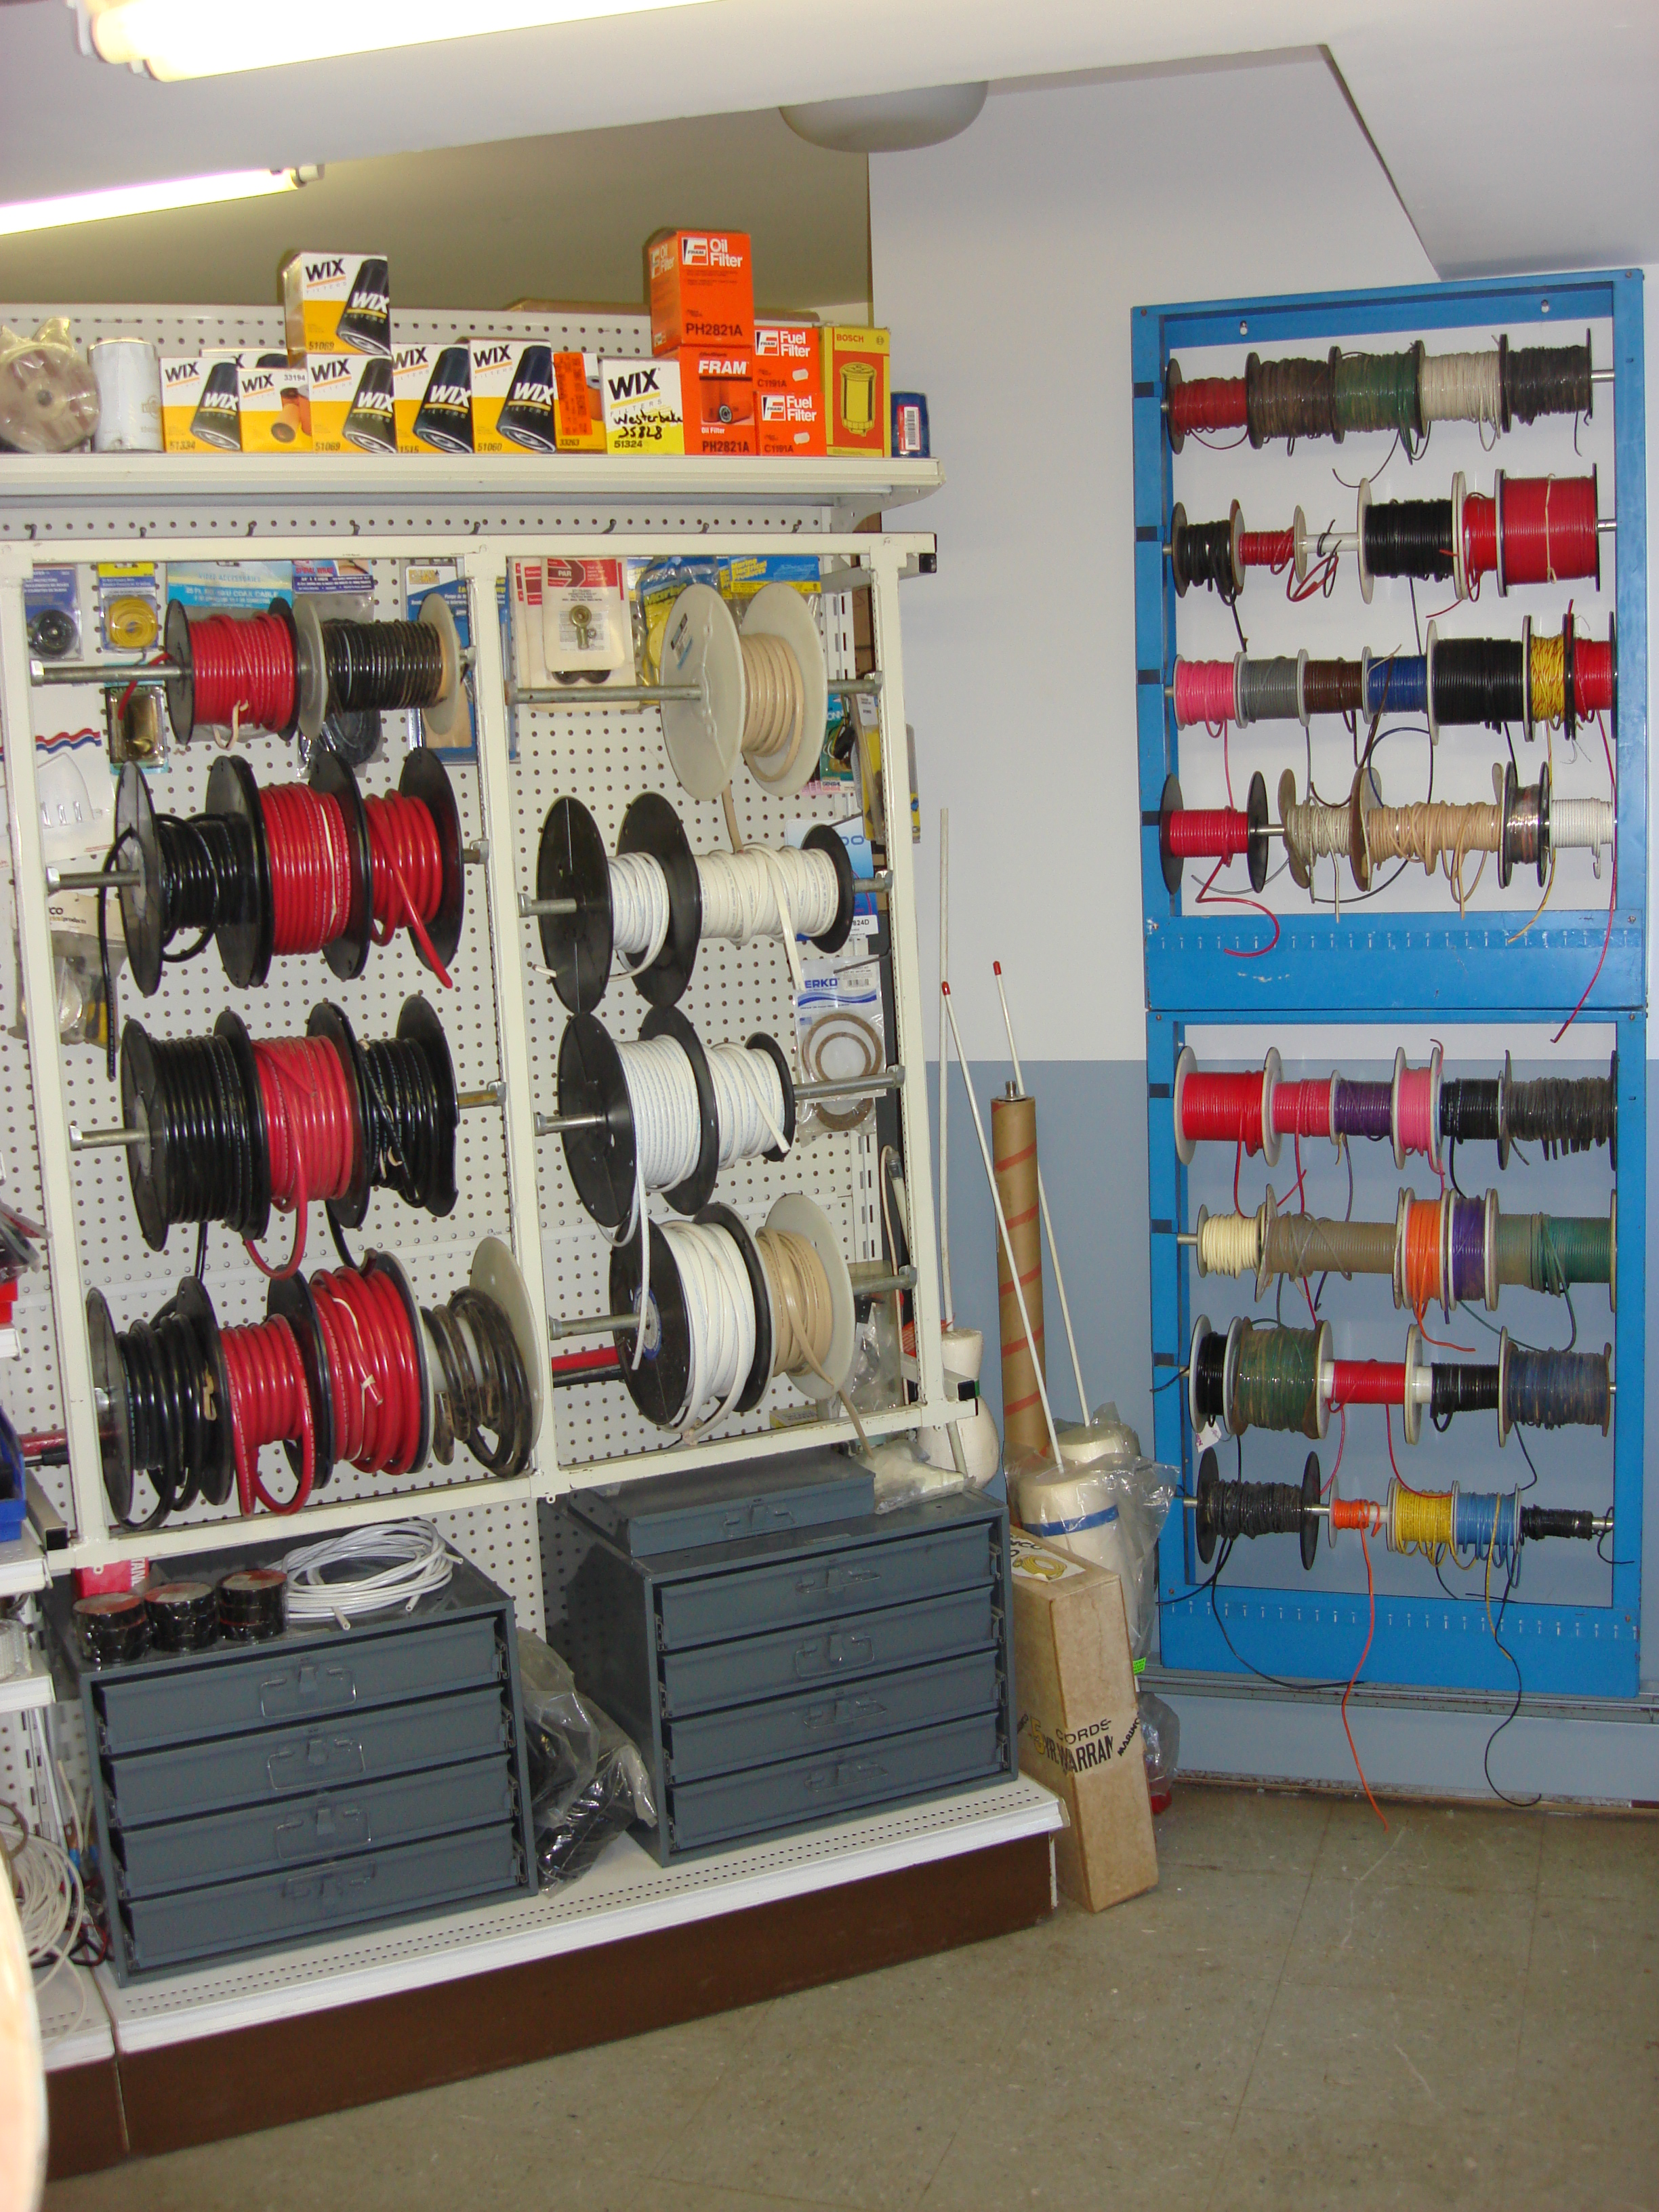 Spools of wire/cable.